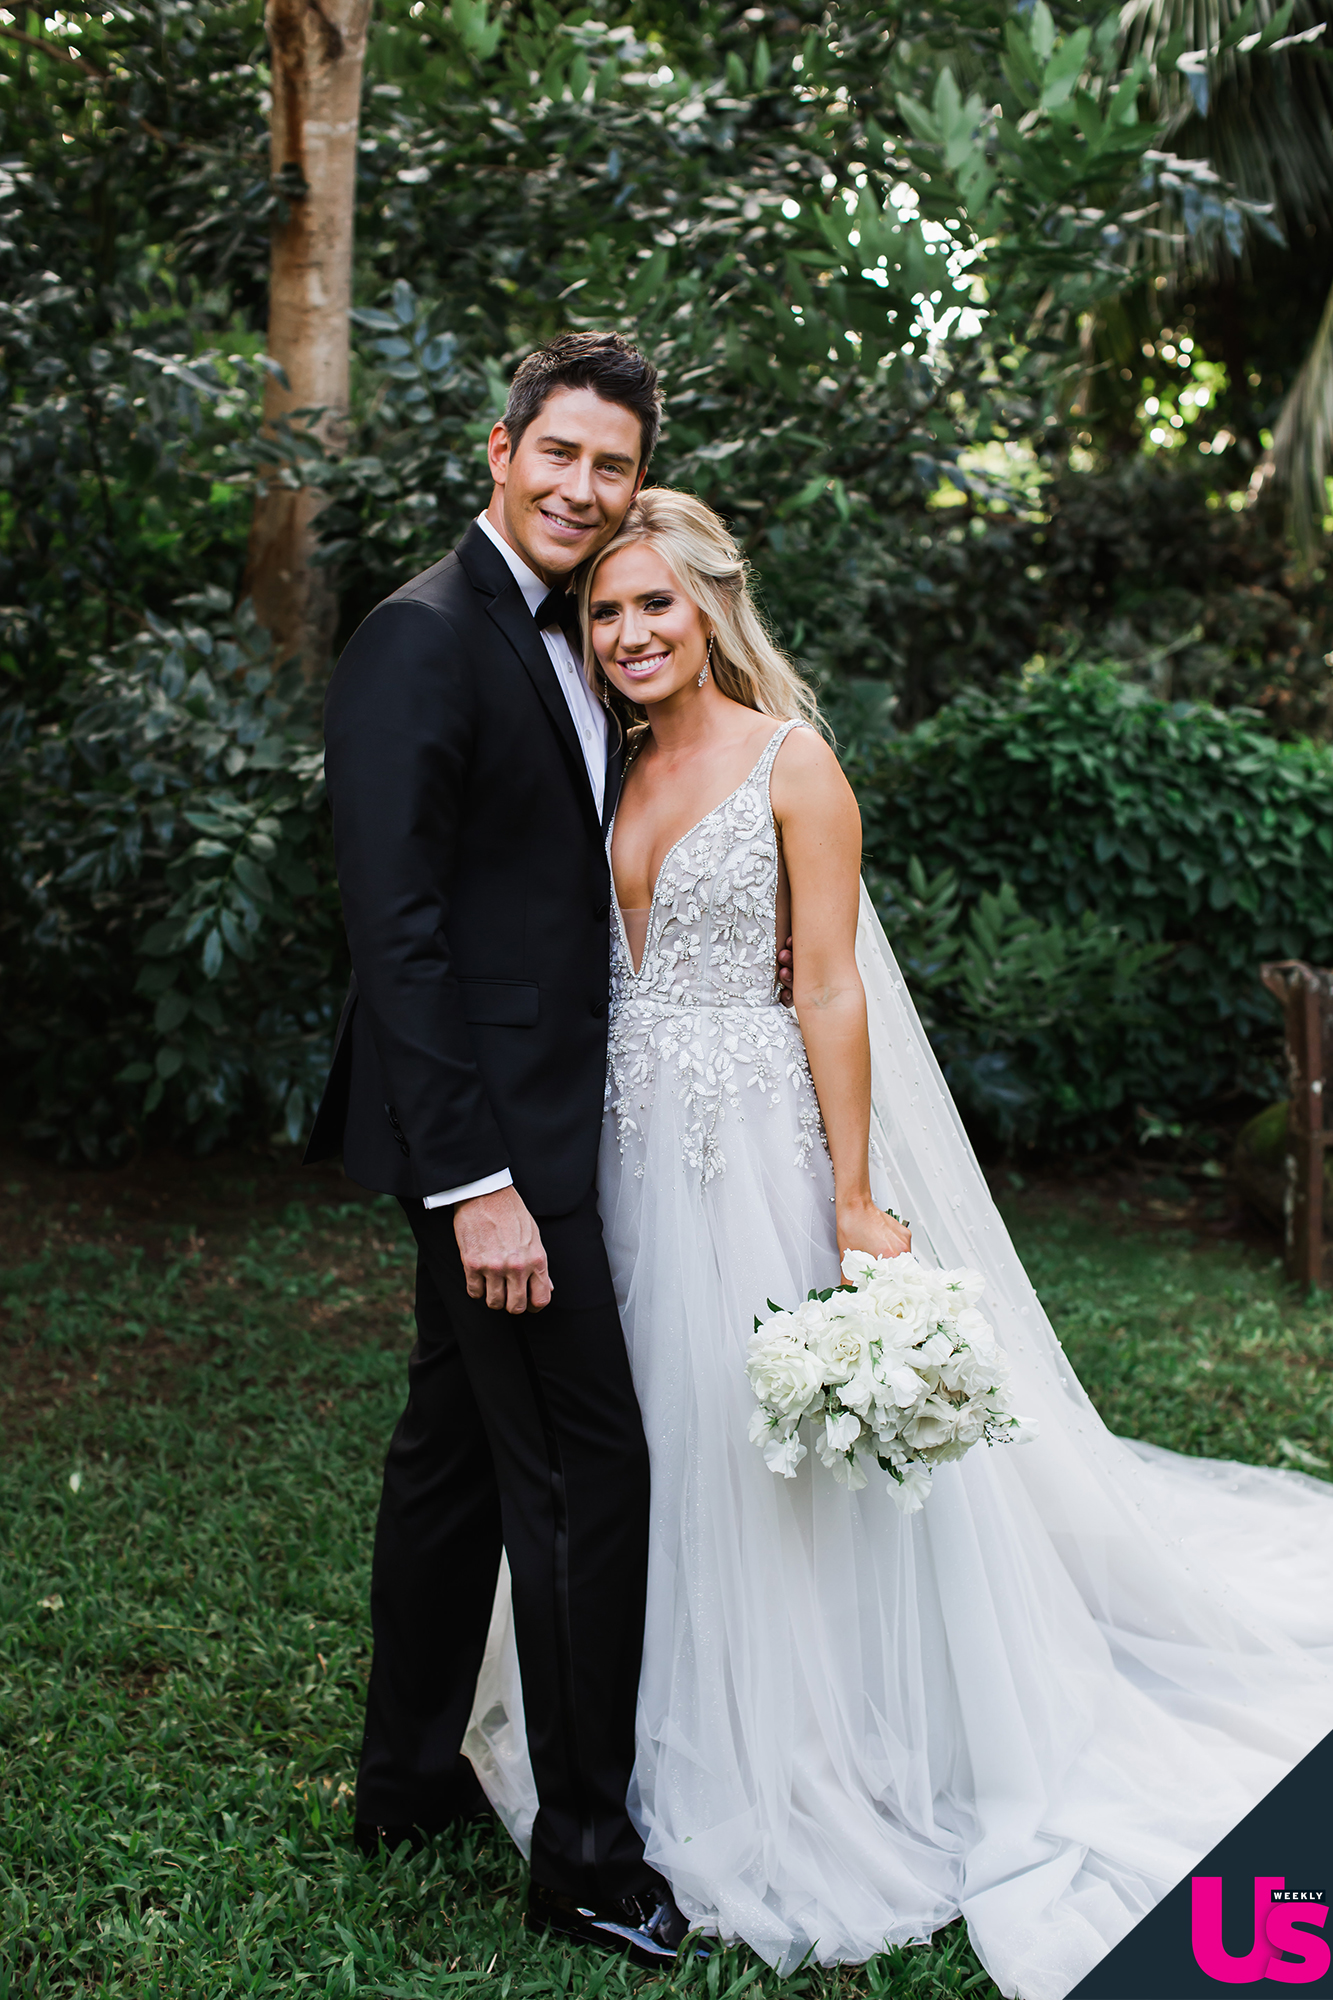 Arie Luyendyk Jr Lauren Burnham S Hawaii Wedding Album Photos